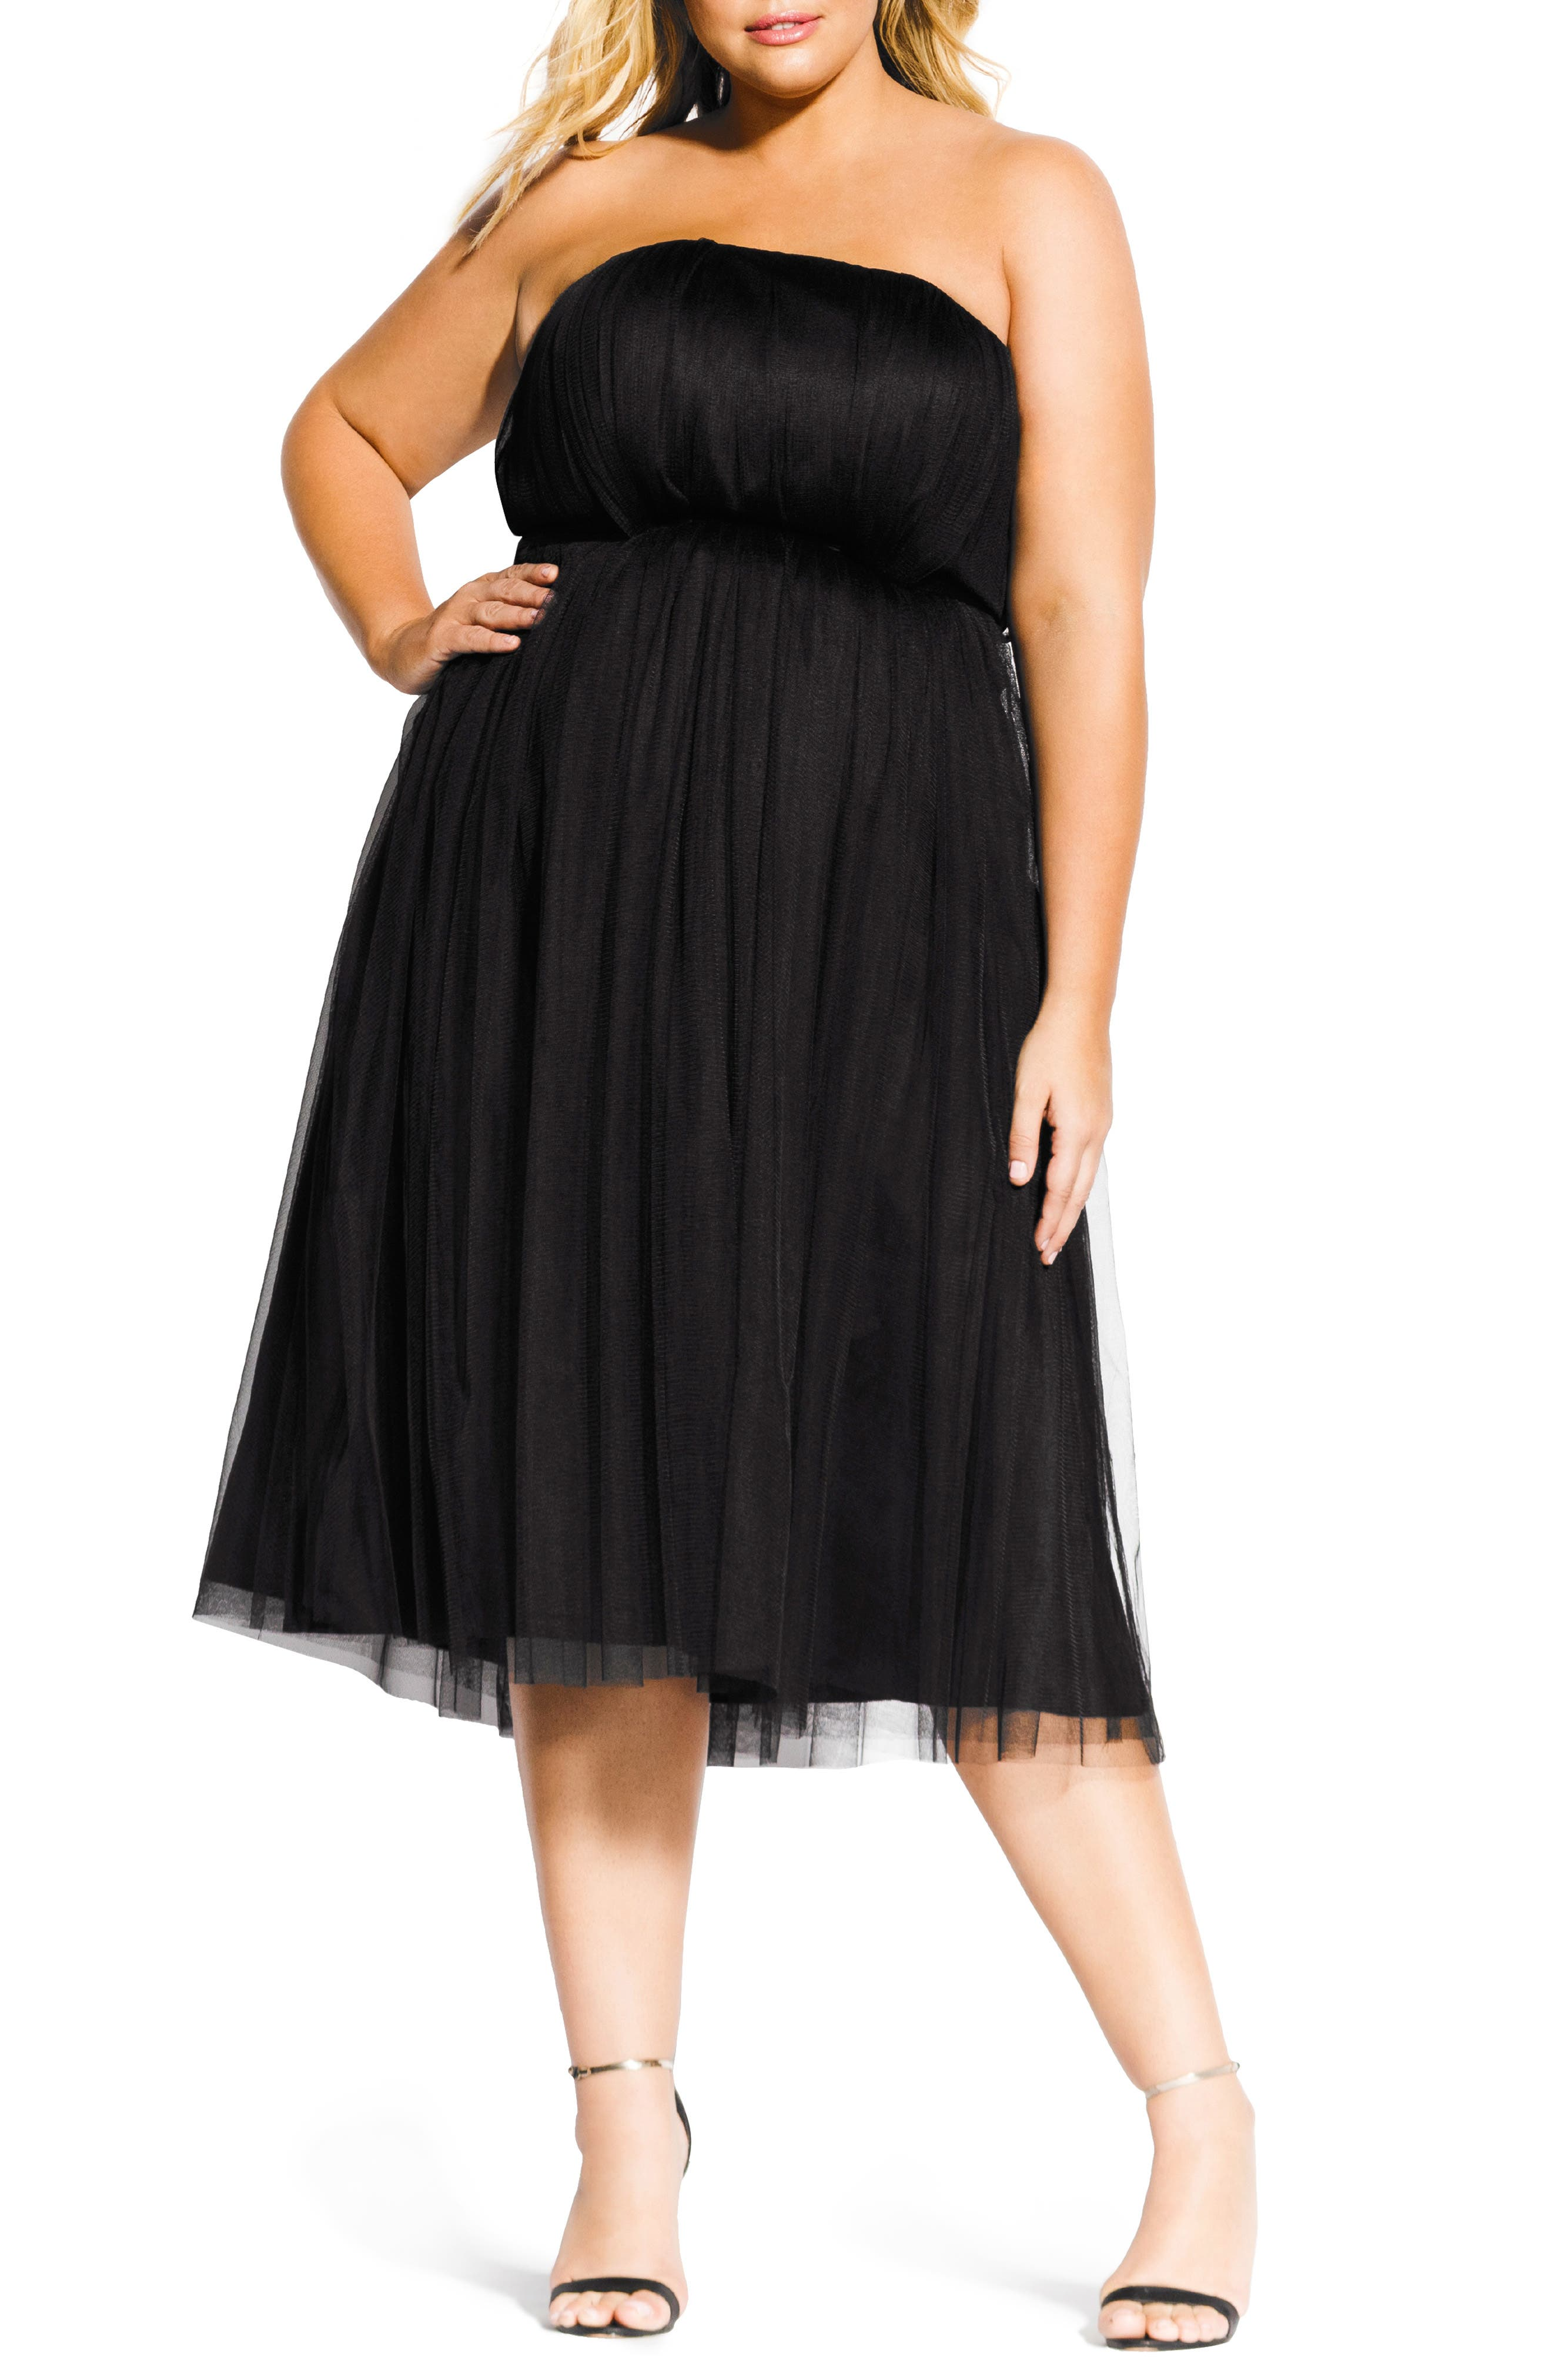 1950s Prom Dresses & Party Dresses Plus Size Womens City Chic Tulle Midi Dress $169.00 AT vintagedancer.com